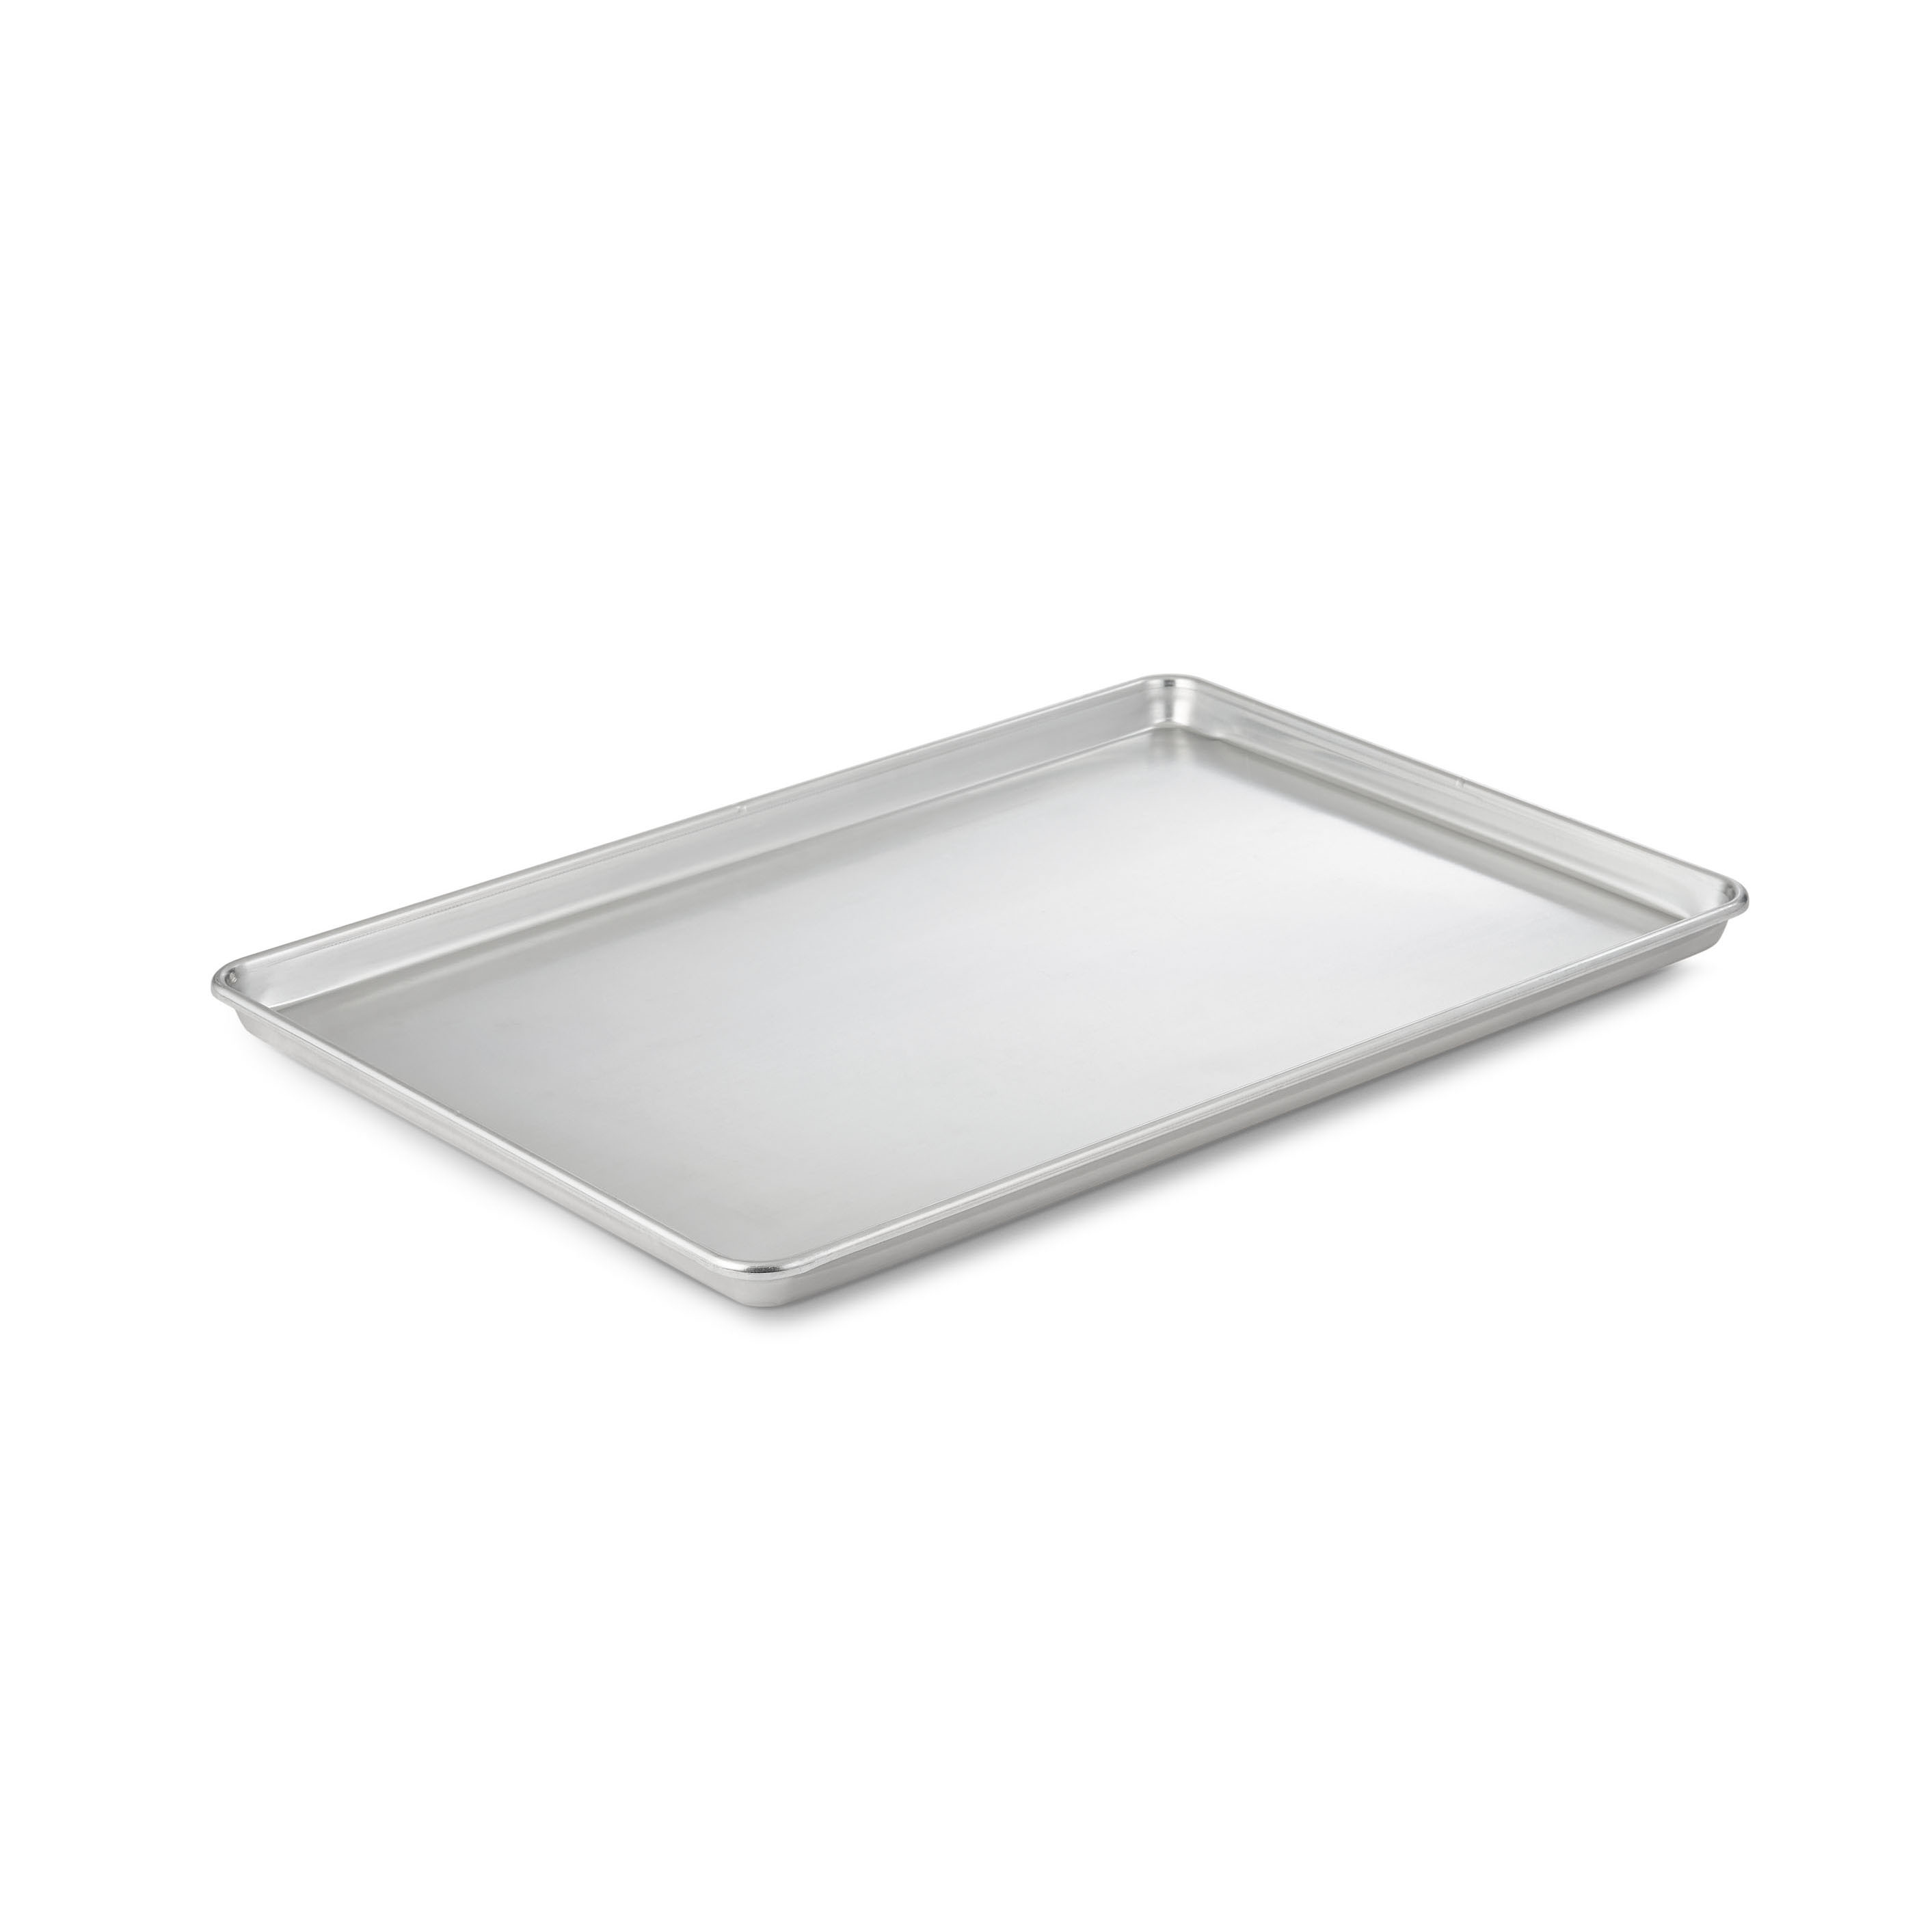 Vollrath 935303 bun / sheet pan